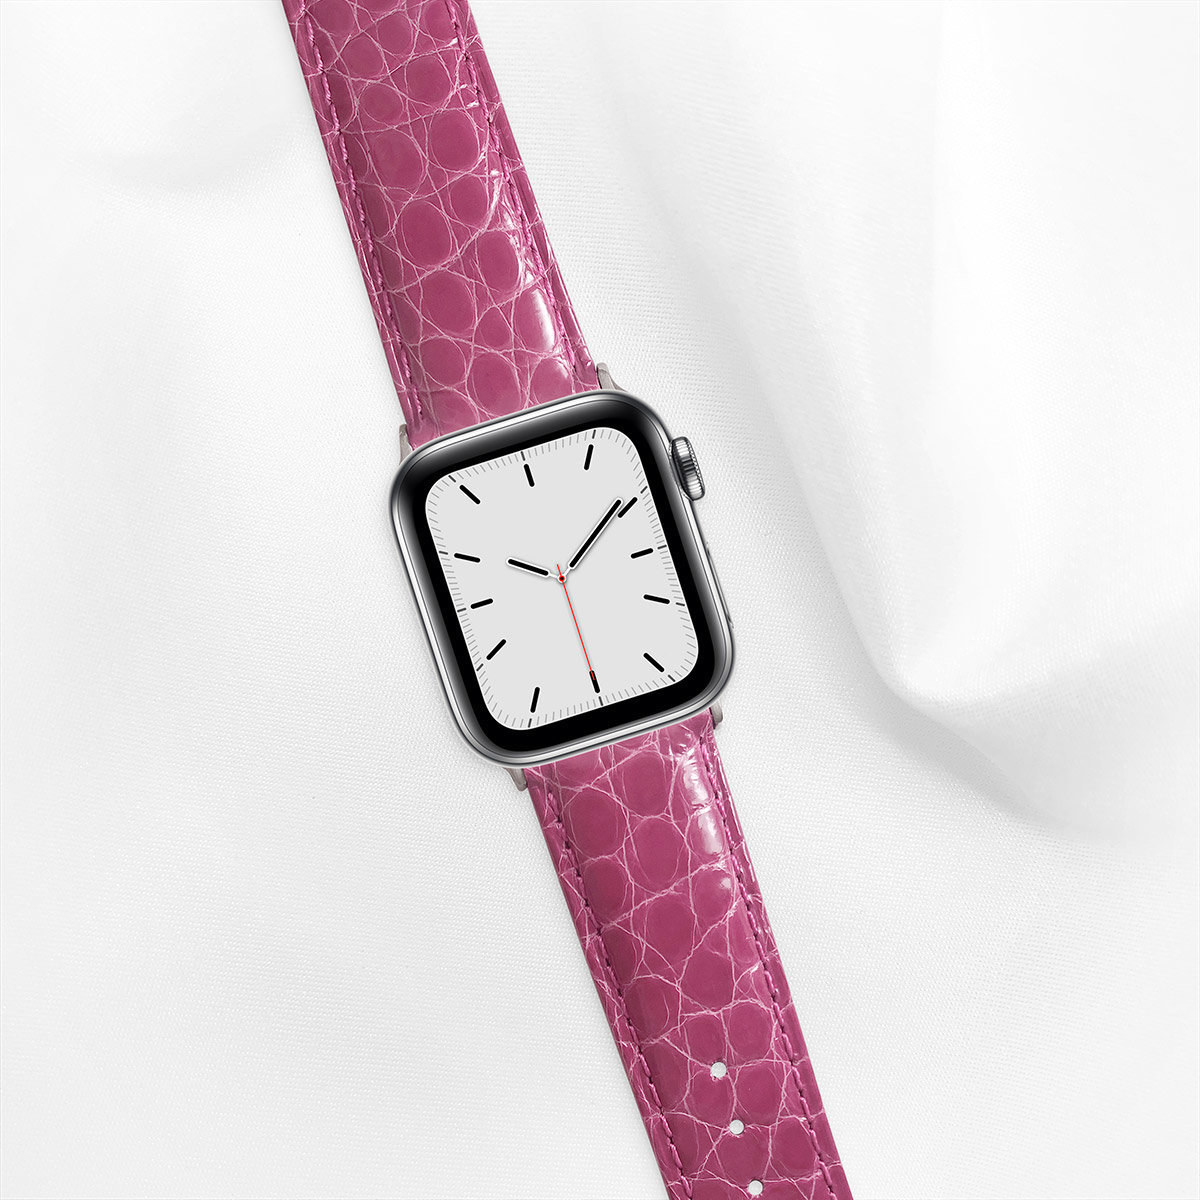 Shiny Alligator 40mm Apple Watch 5 Strap, Magenta, Round Scales, for Small Casing